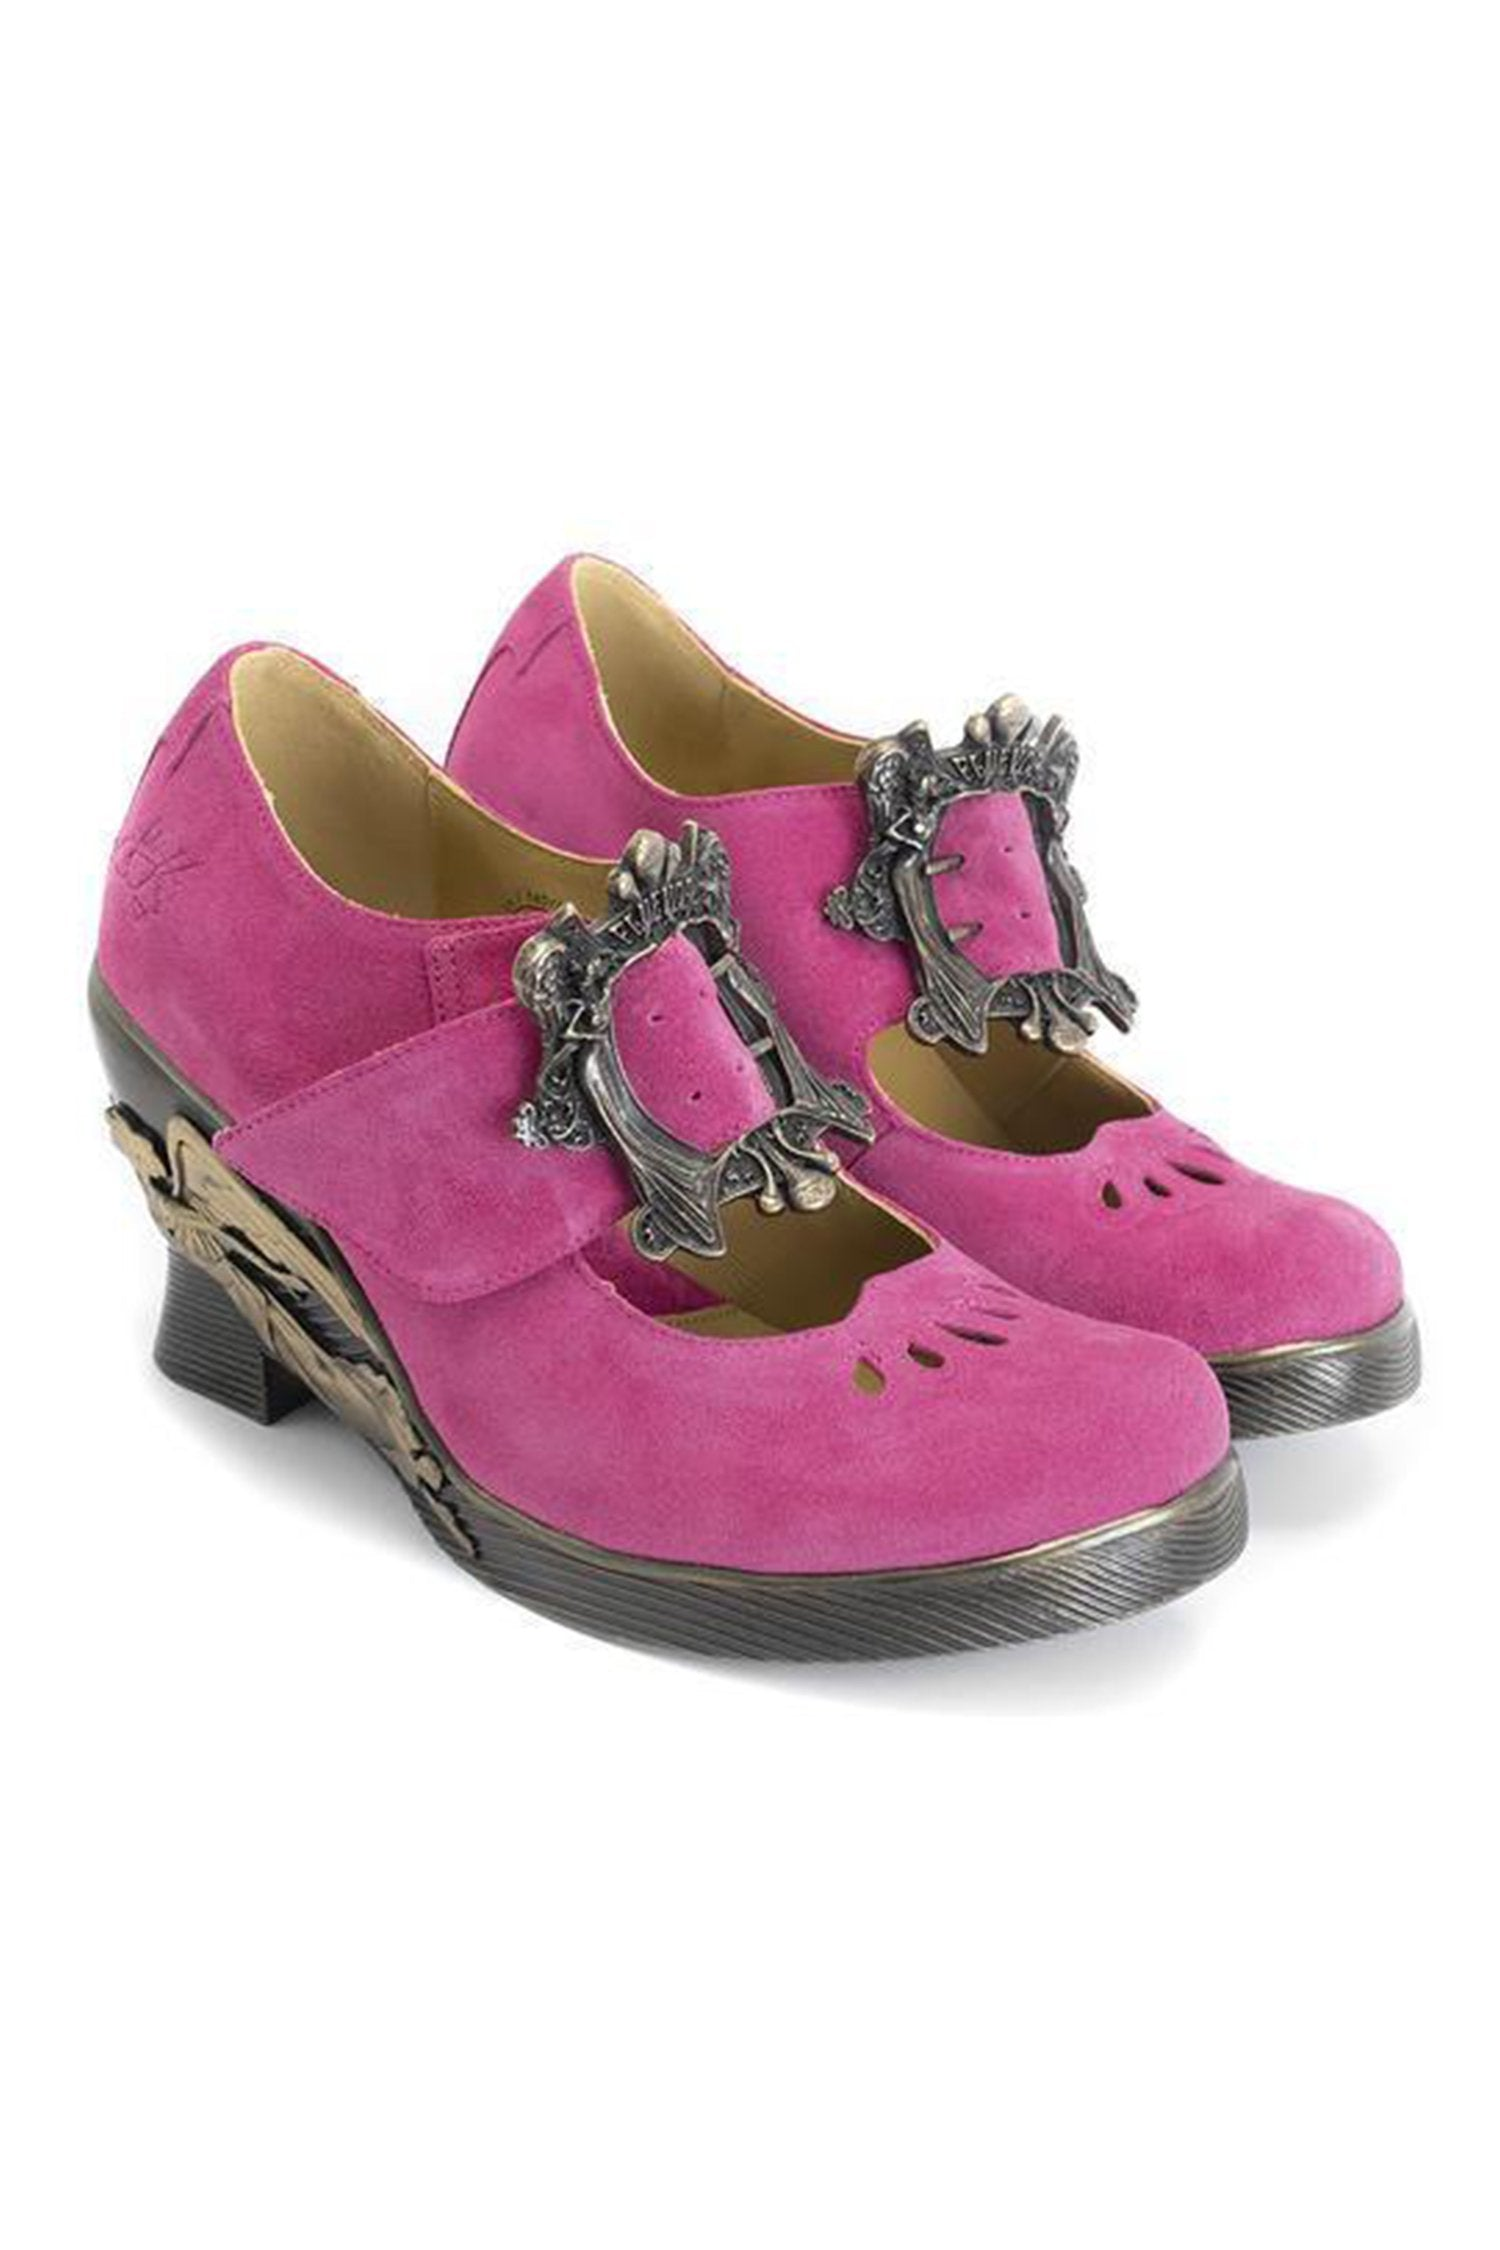 John Fluevog <br>Monika: Custom Buckled Mary Jane</br> - Anna Sui